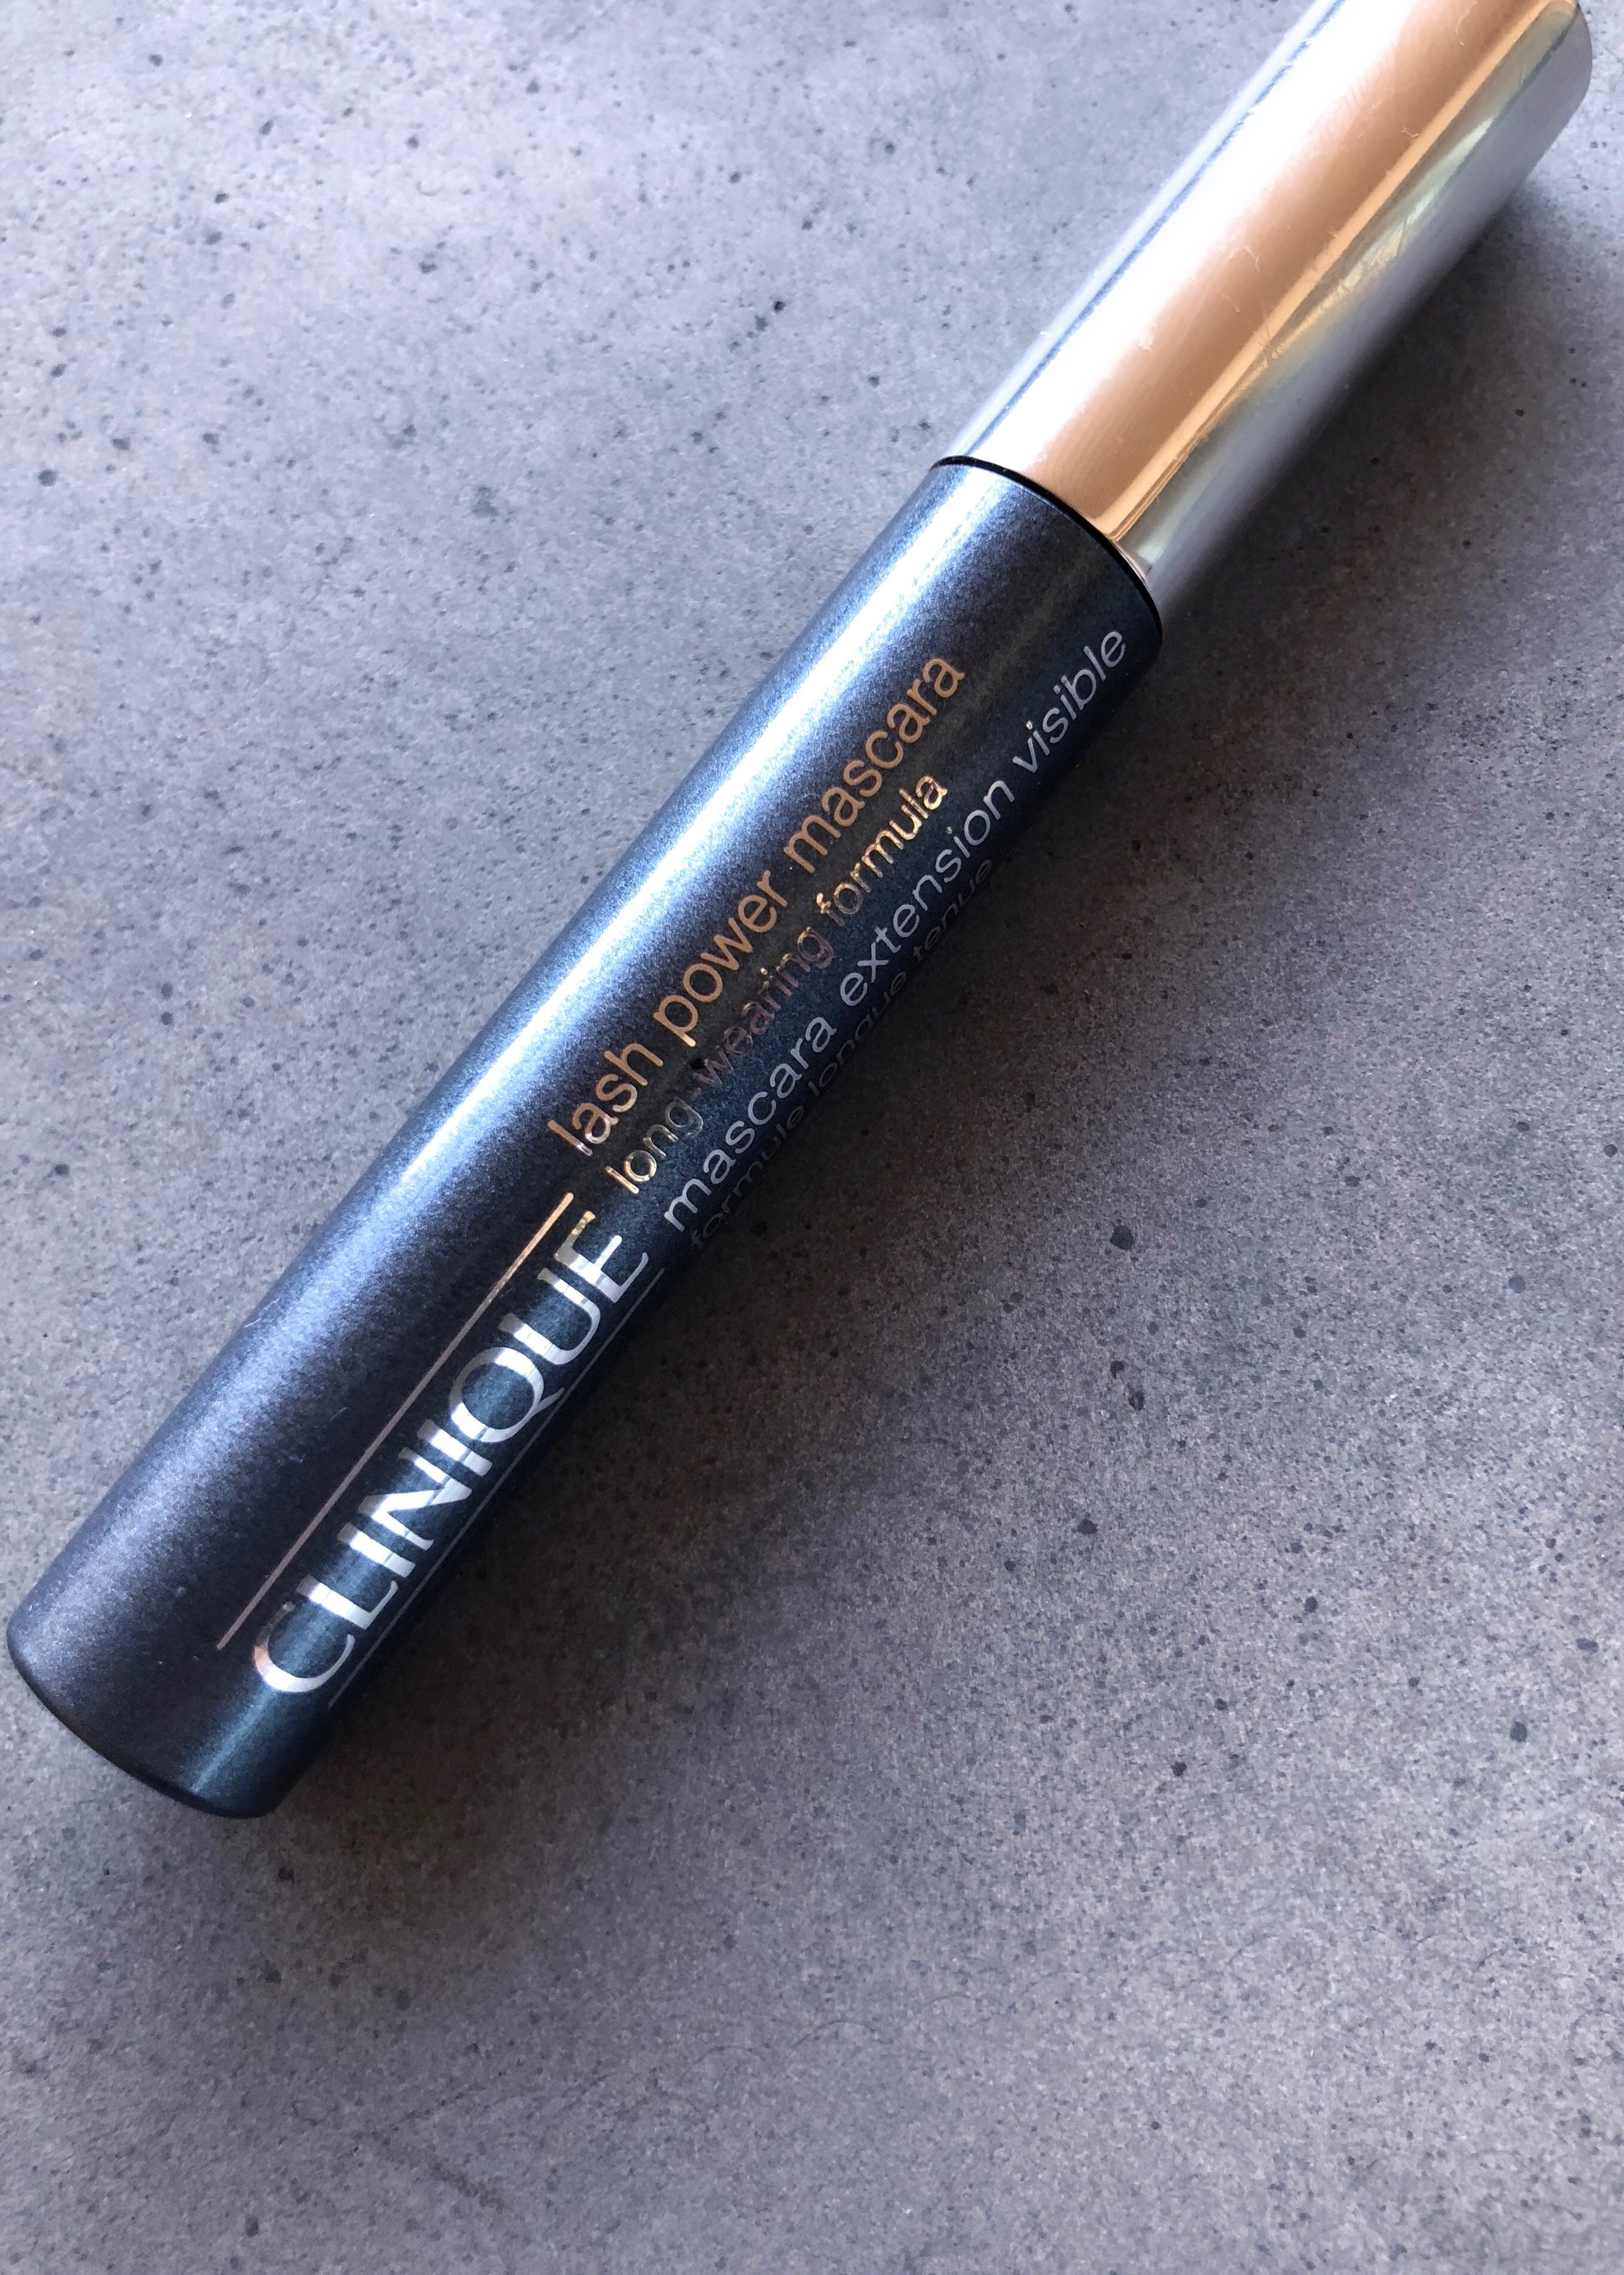 Clinique Lash Power Mascara - I curl my lashes and then apply this mascara to keep them fixed perfectly. I also use this on my brows - it holds them in place and washes out super easily.